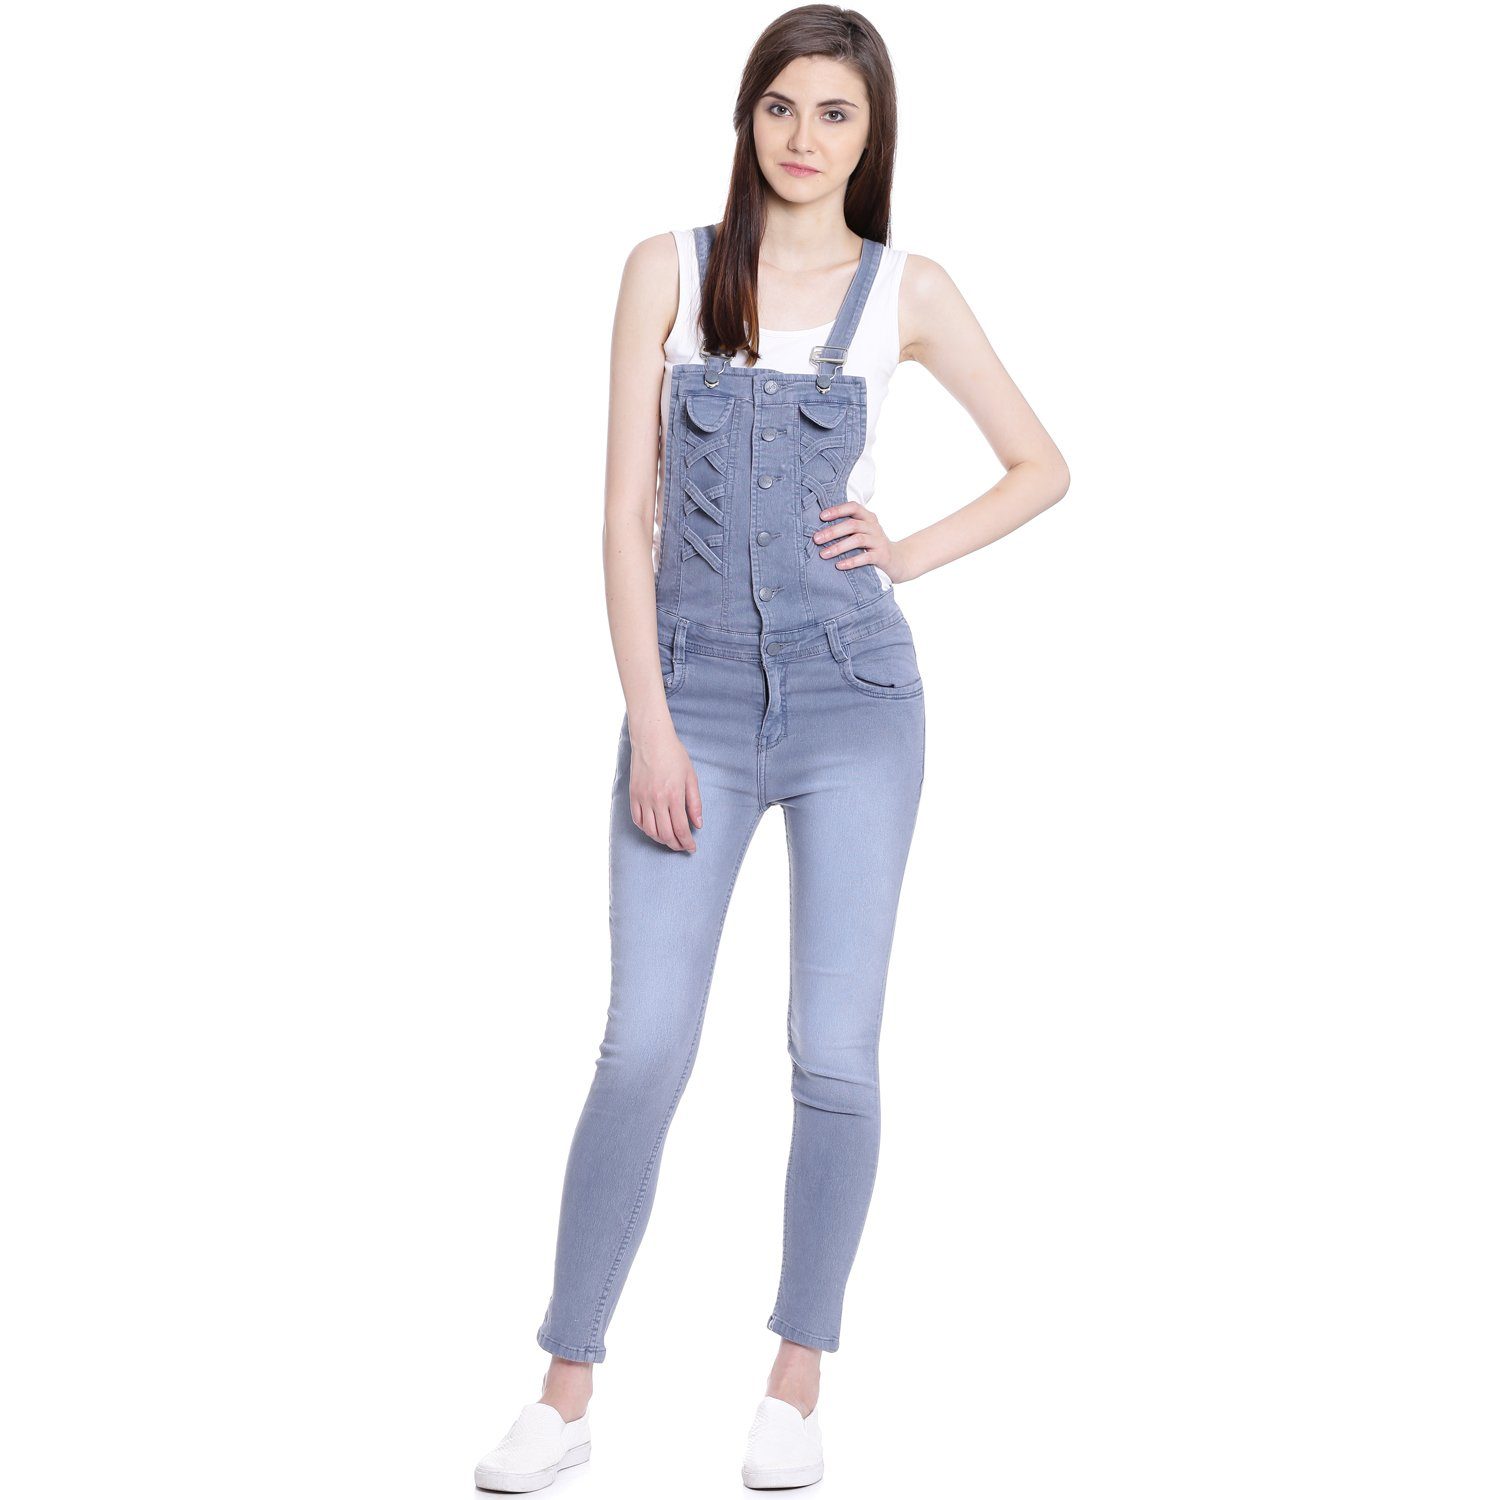 d4532e4acf Jumpsuits For Women  Buy Jumpsuits For Girls online at best prices ...